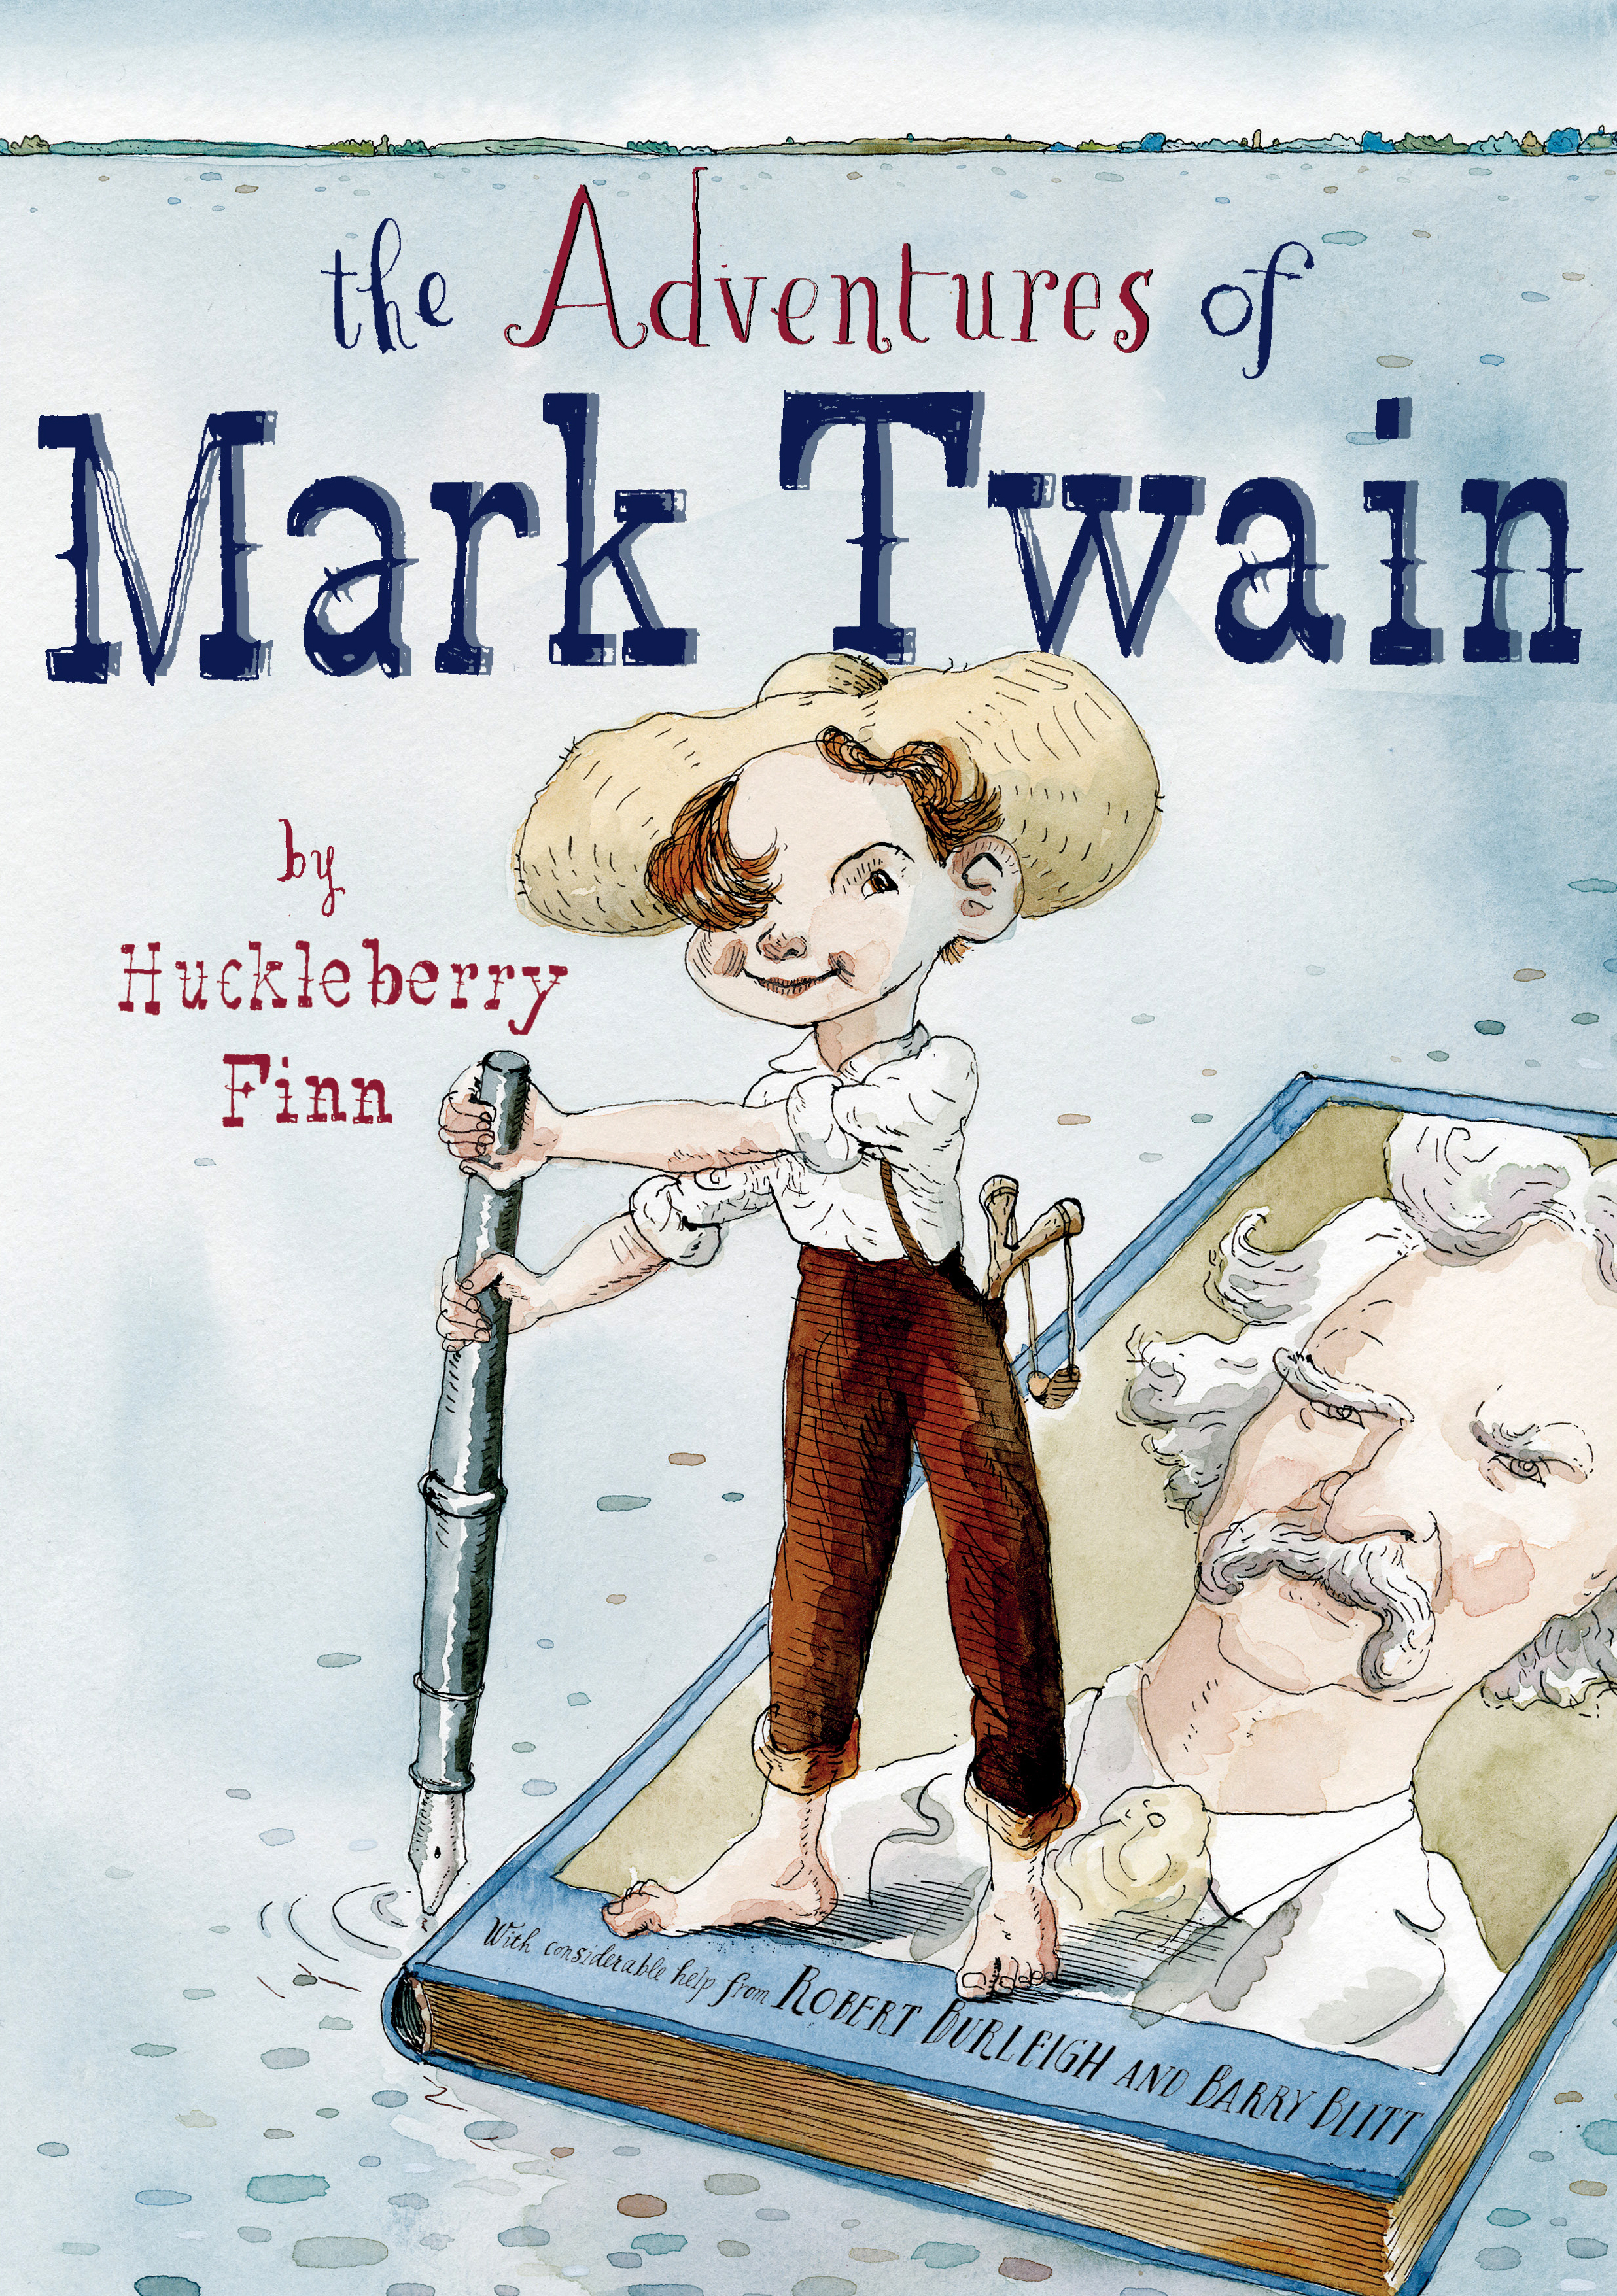 """a summary of the book the adventures of huckleberry finn by mark twain The adventures of huckleberry finn author: mark twain the novel """"the adventures of huckleberry finn"""" is satirical novel, because there is a large number of characters and a lot of events that extend through the extensive novel the author of the novel gave the greatest attention to the adventures of the main character huckleberry finn."""